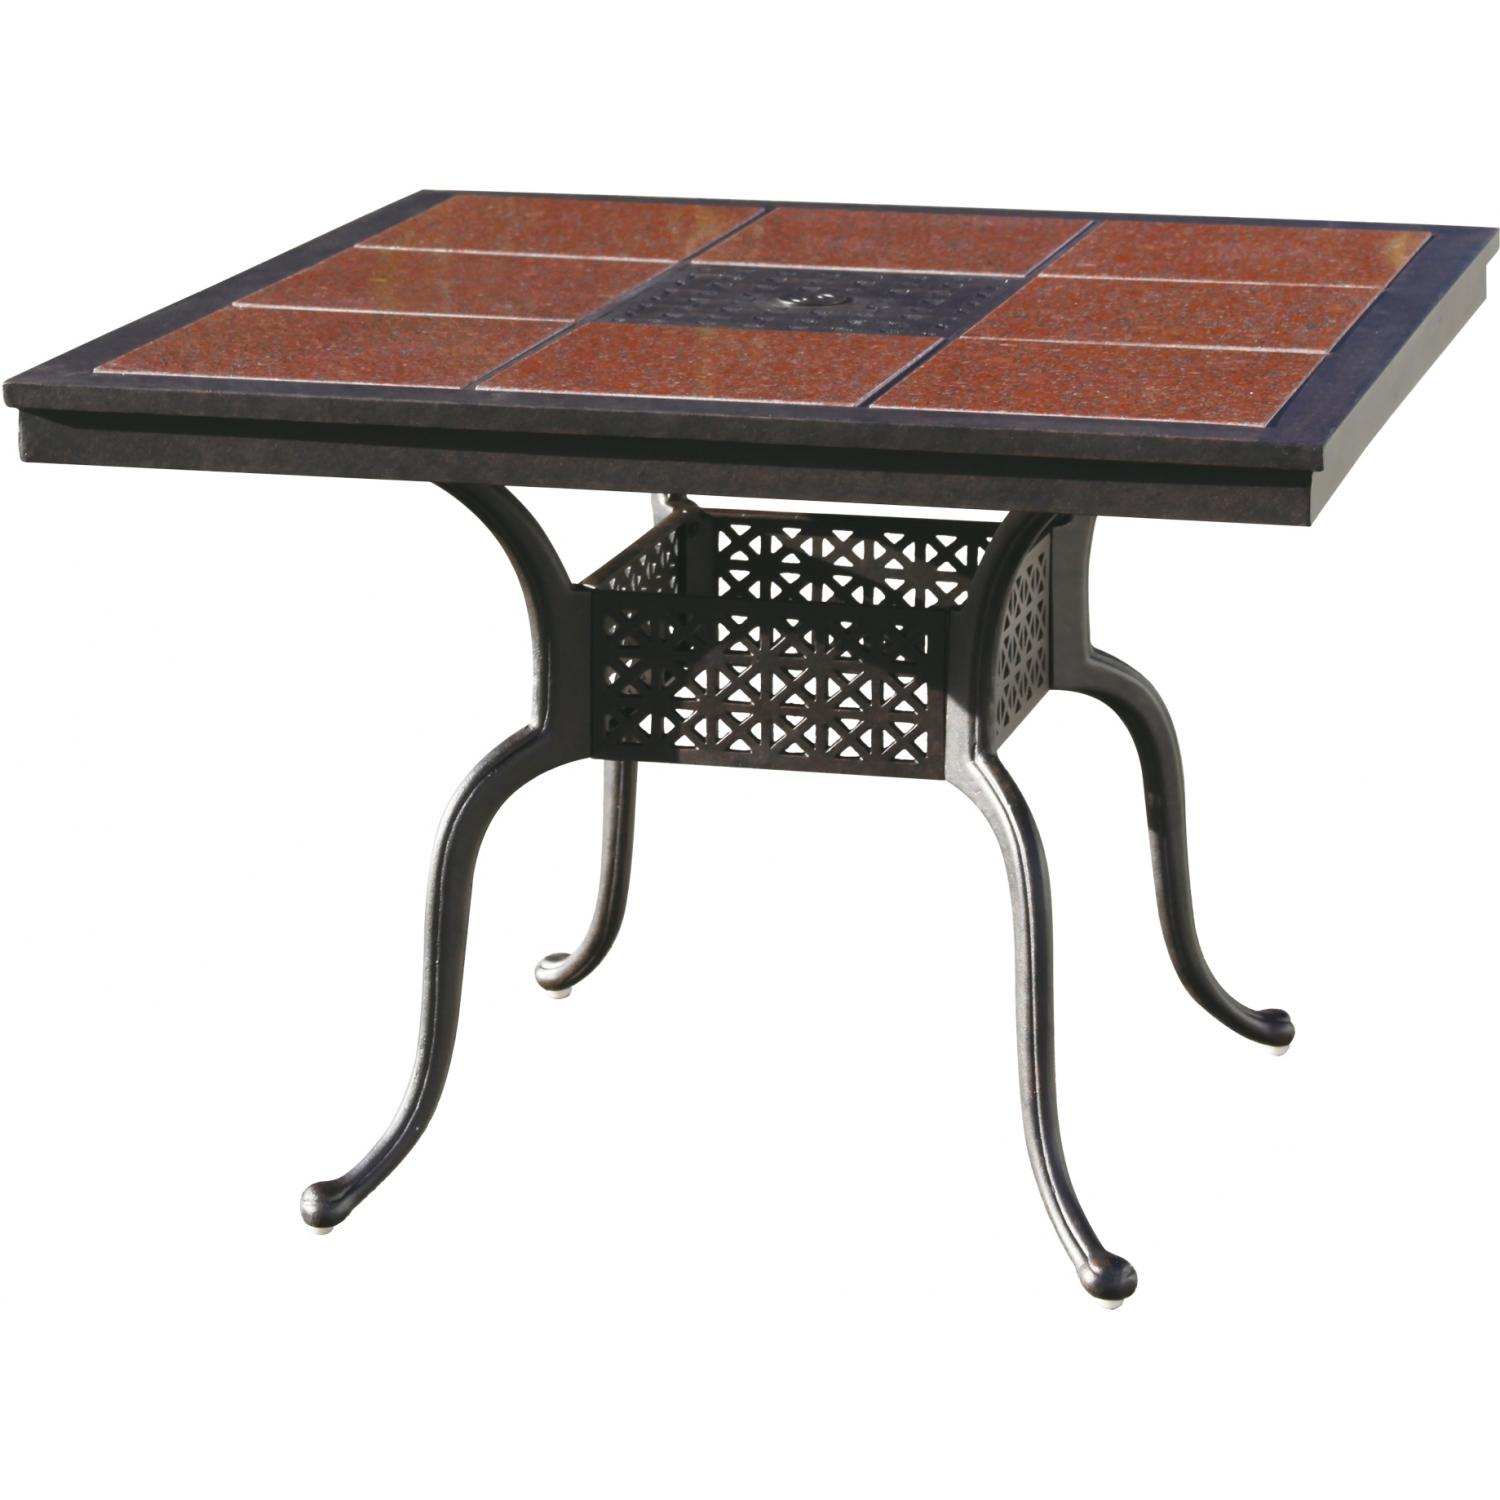 Darlee Series 77 Cast Aluminum Patio Dining Table With Granite Top - Antique Bronze / Ruby Granite Tile at Sears.com